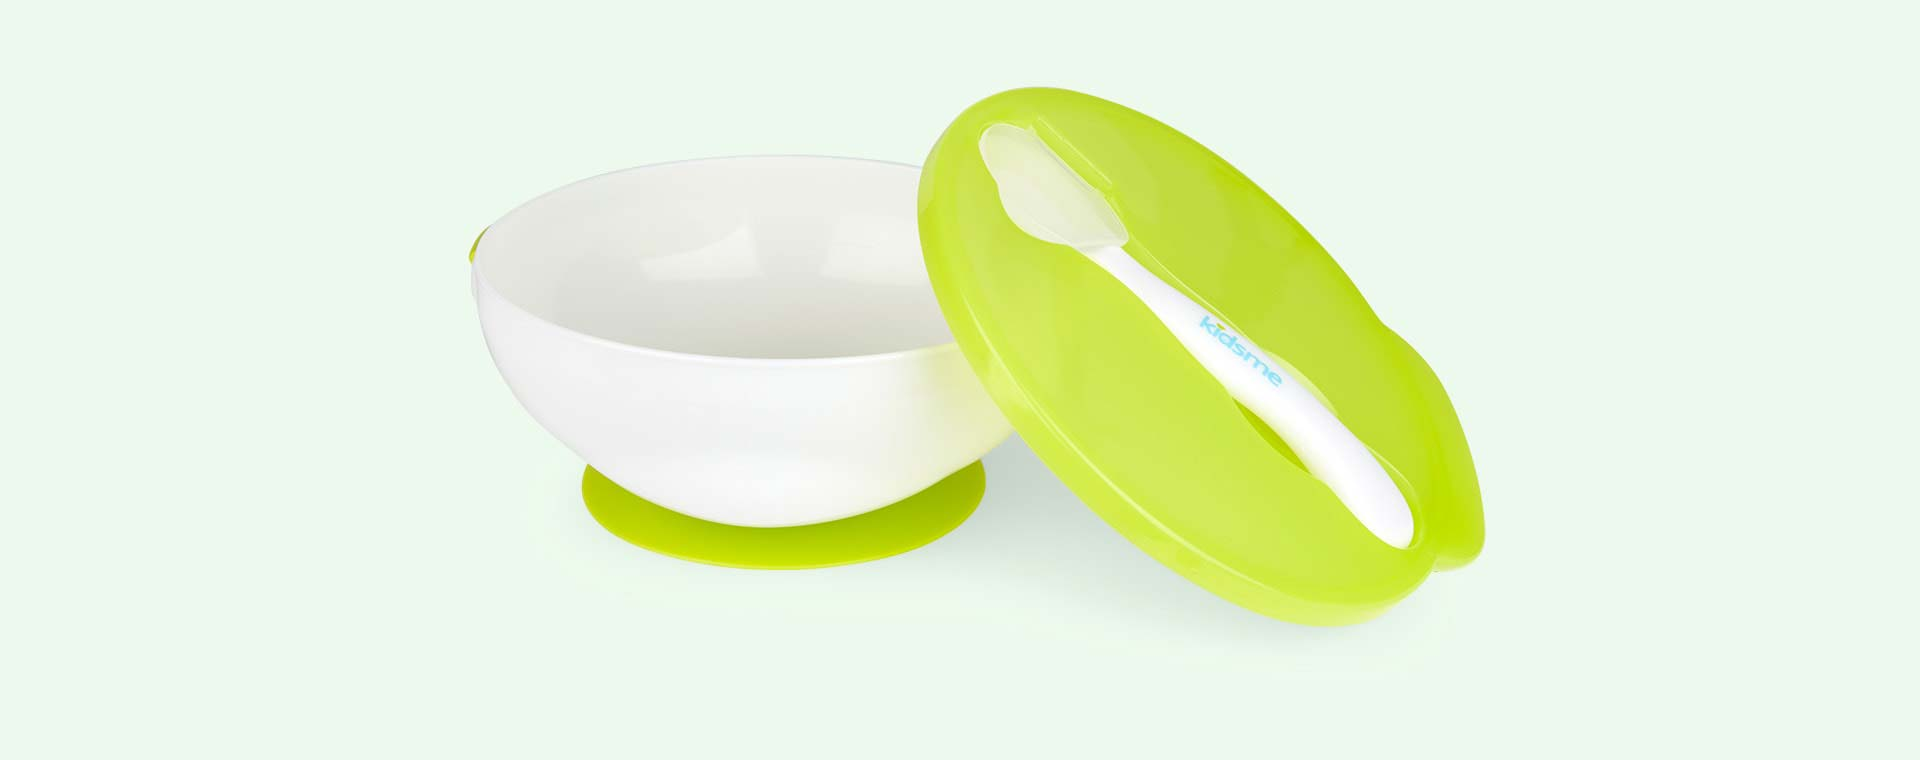 Lime kidsme Suction Bowl & Spoon Set